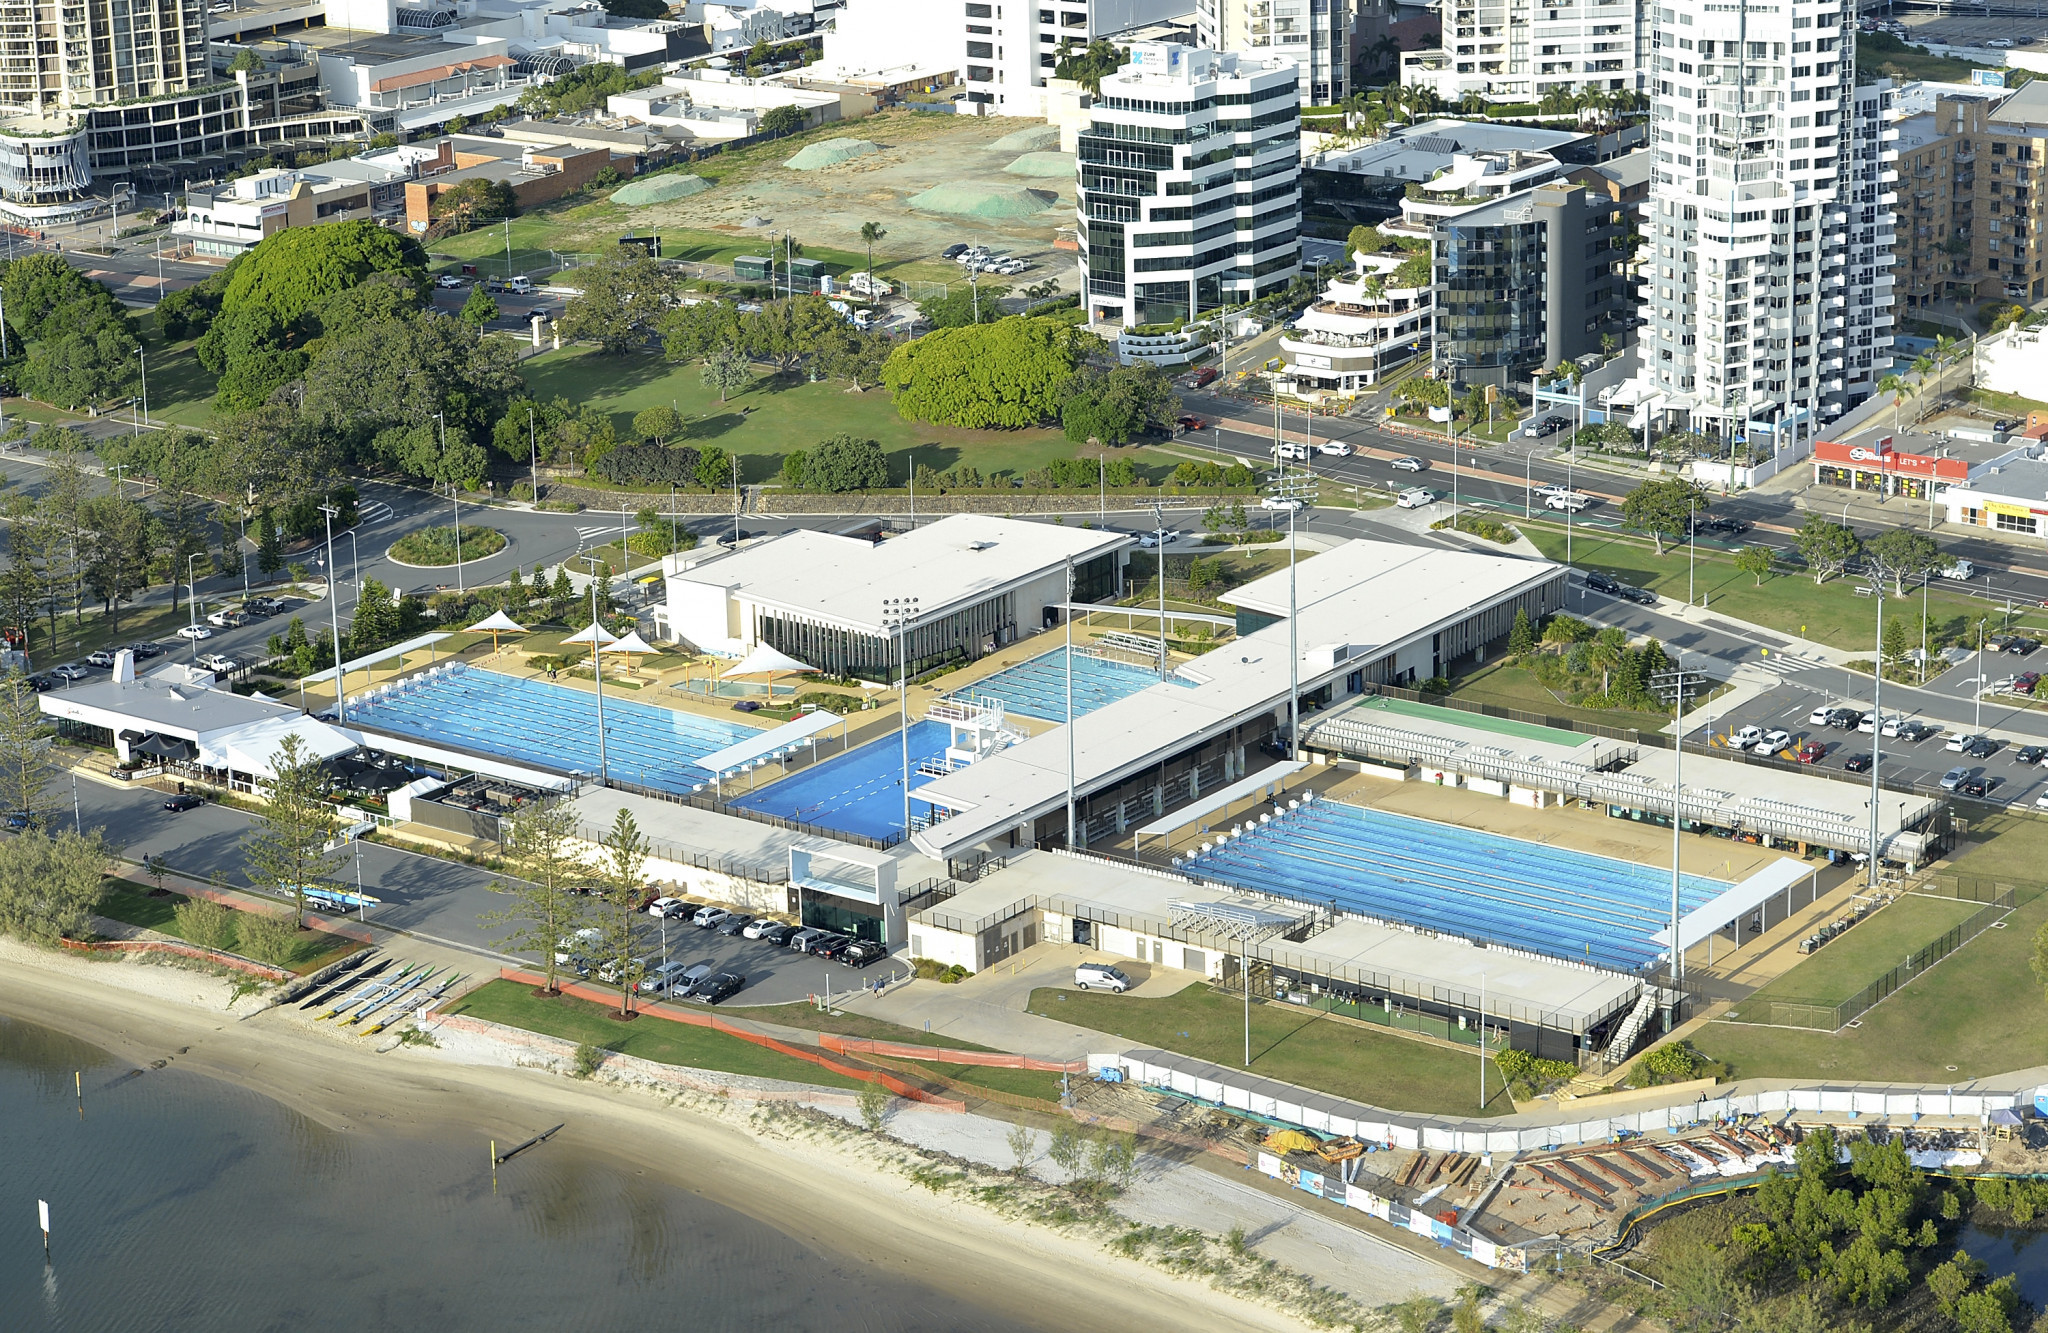 The competition will take place at the Gold Coast Aquatic Centre ©Getty Images